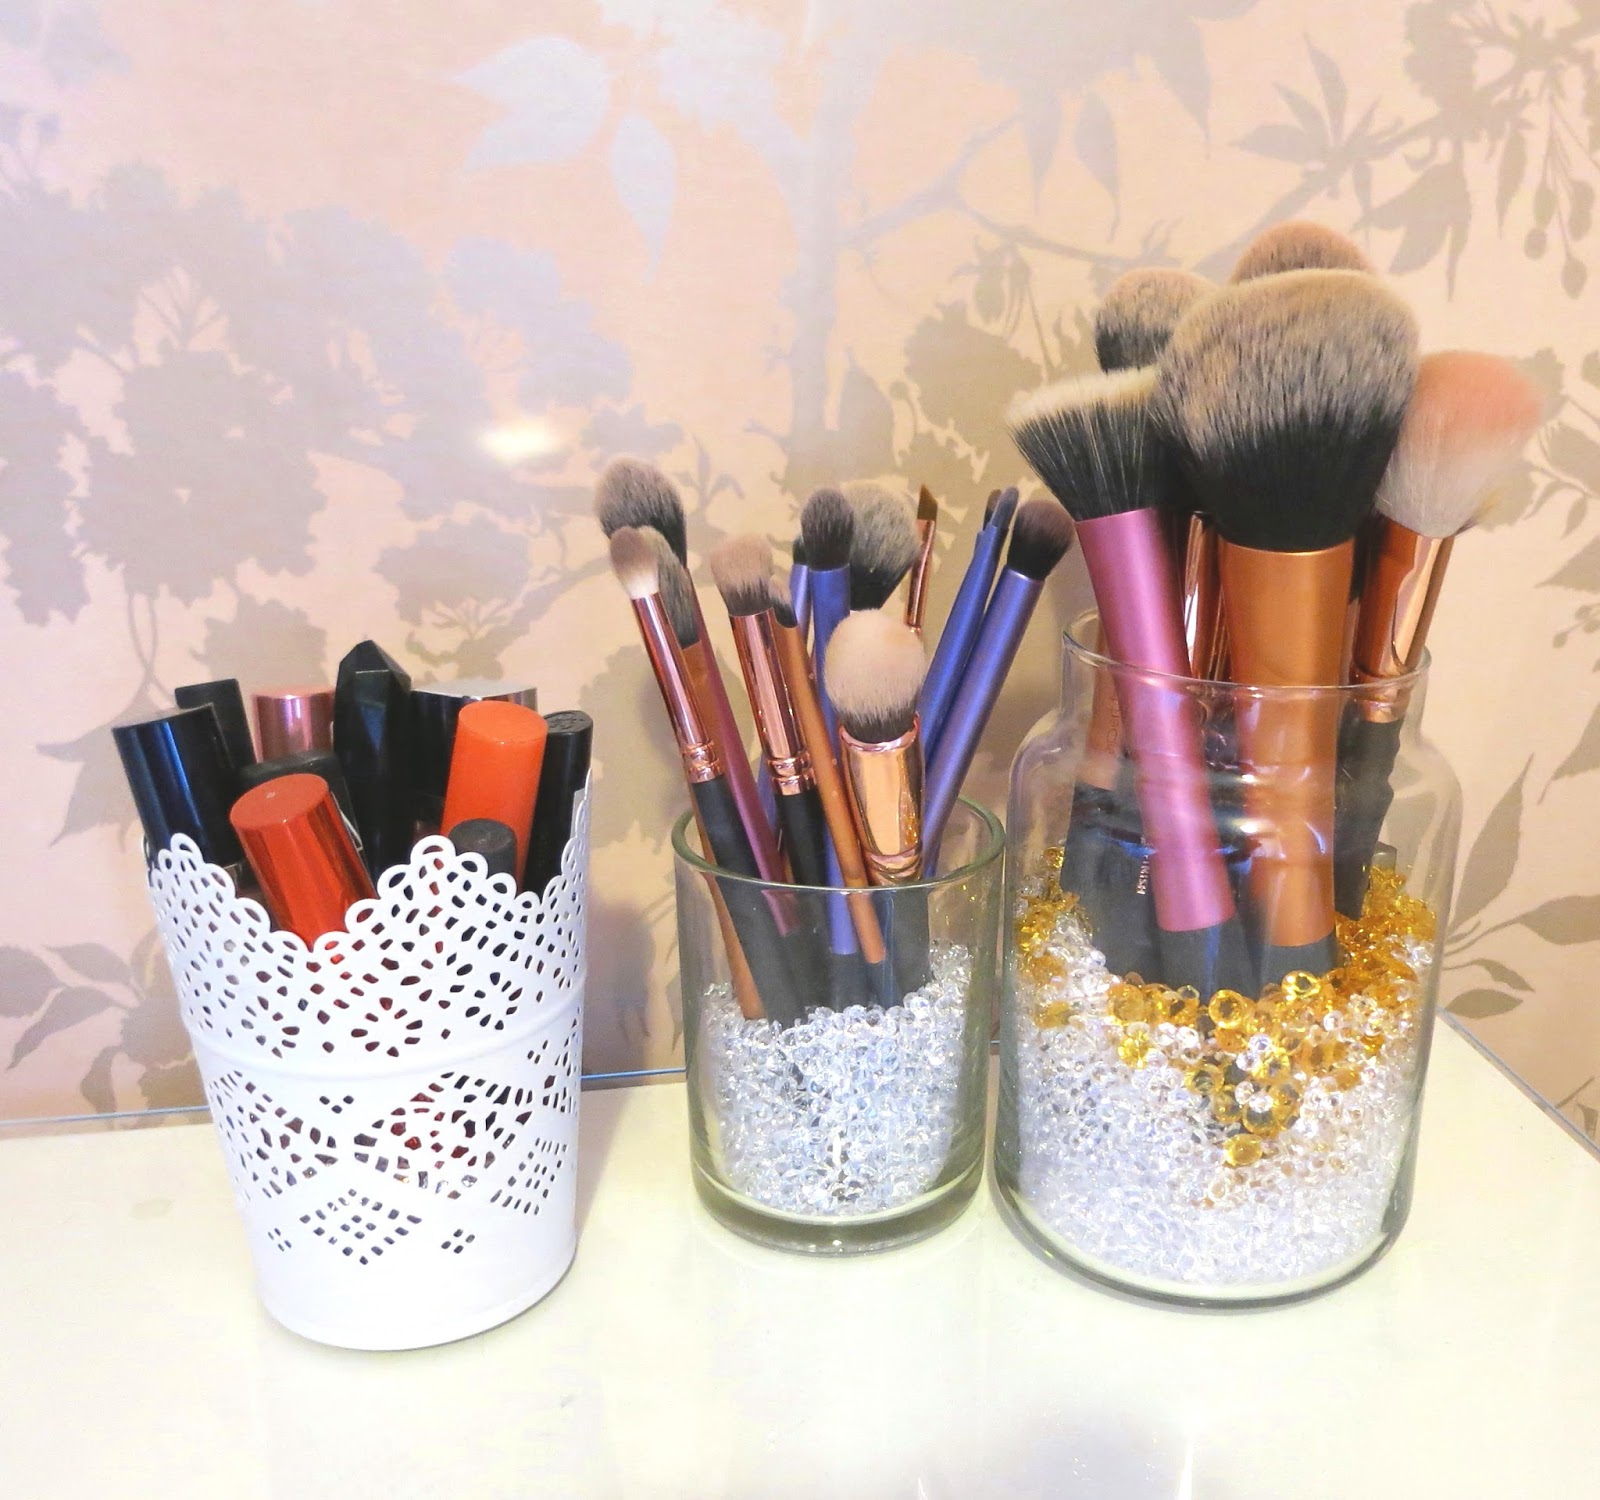 Cute Makeup Brush Holder DIY | Corrie Arnold